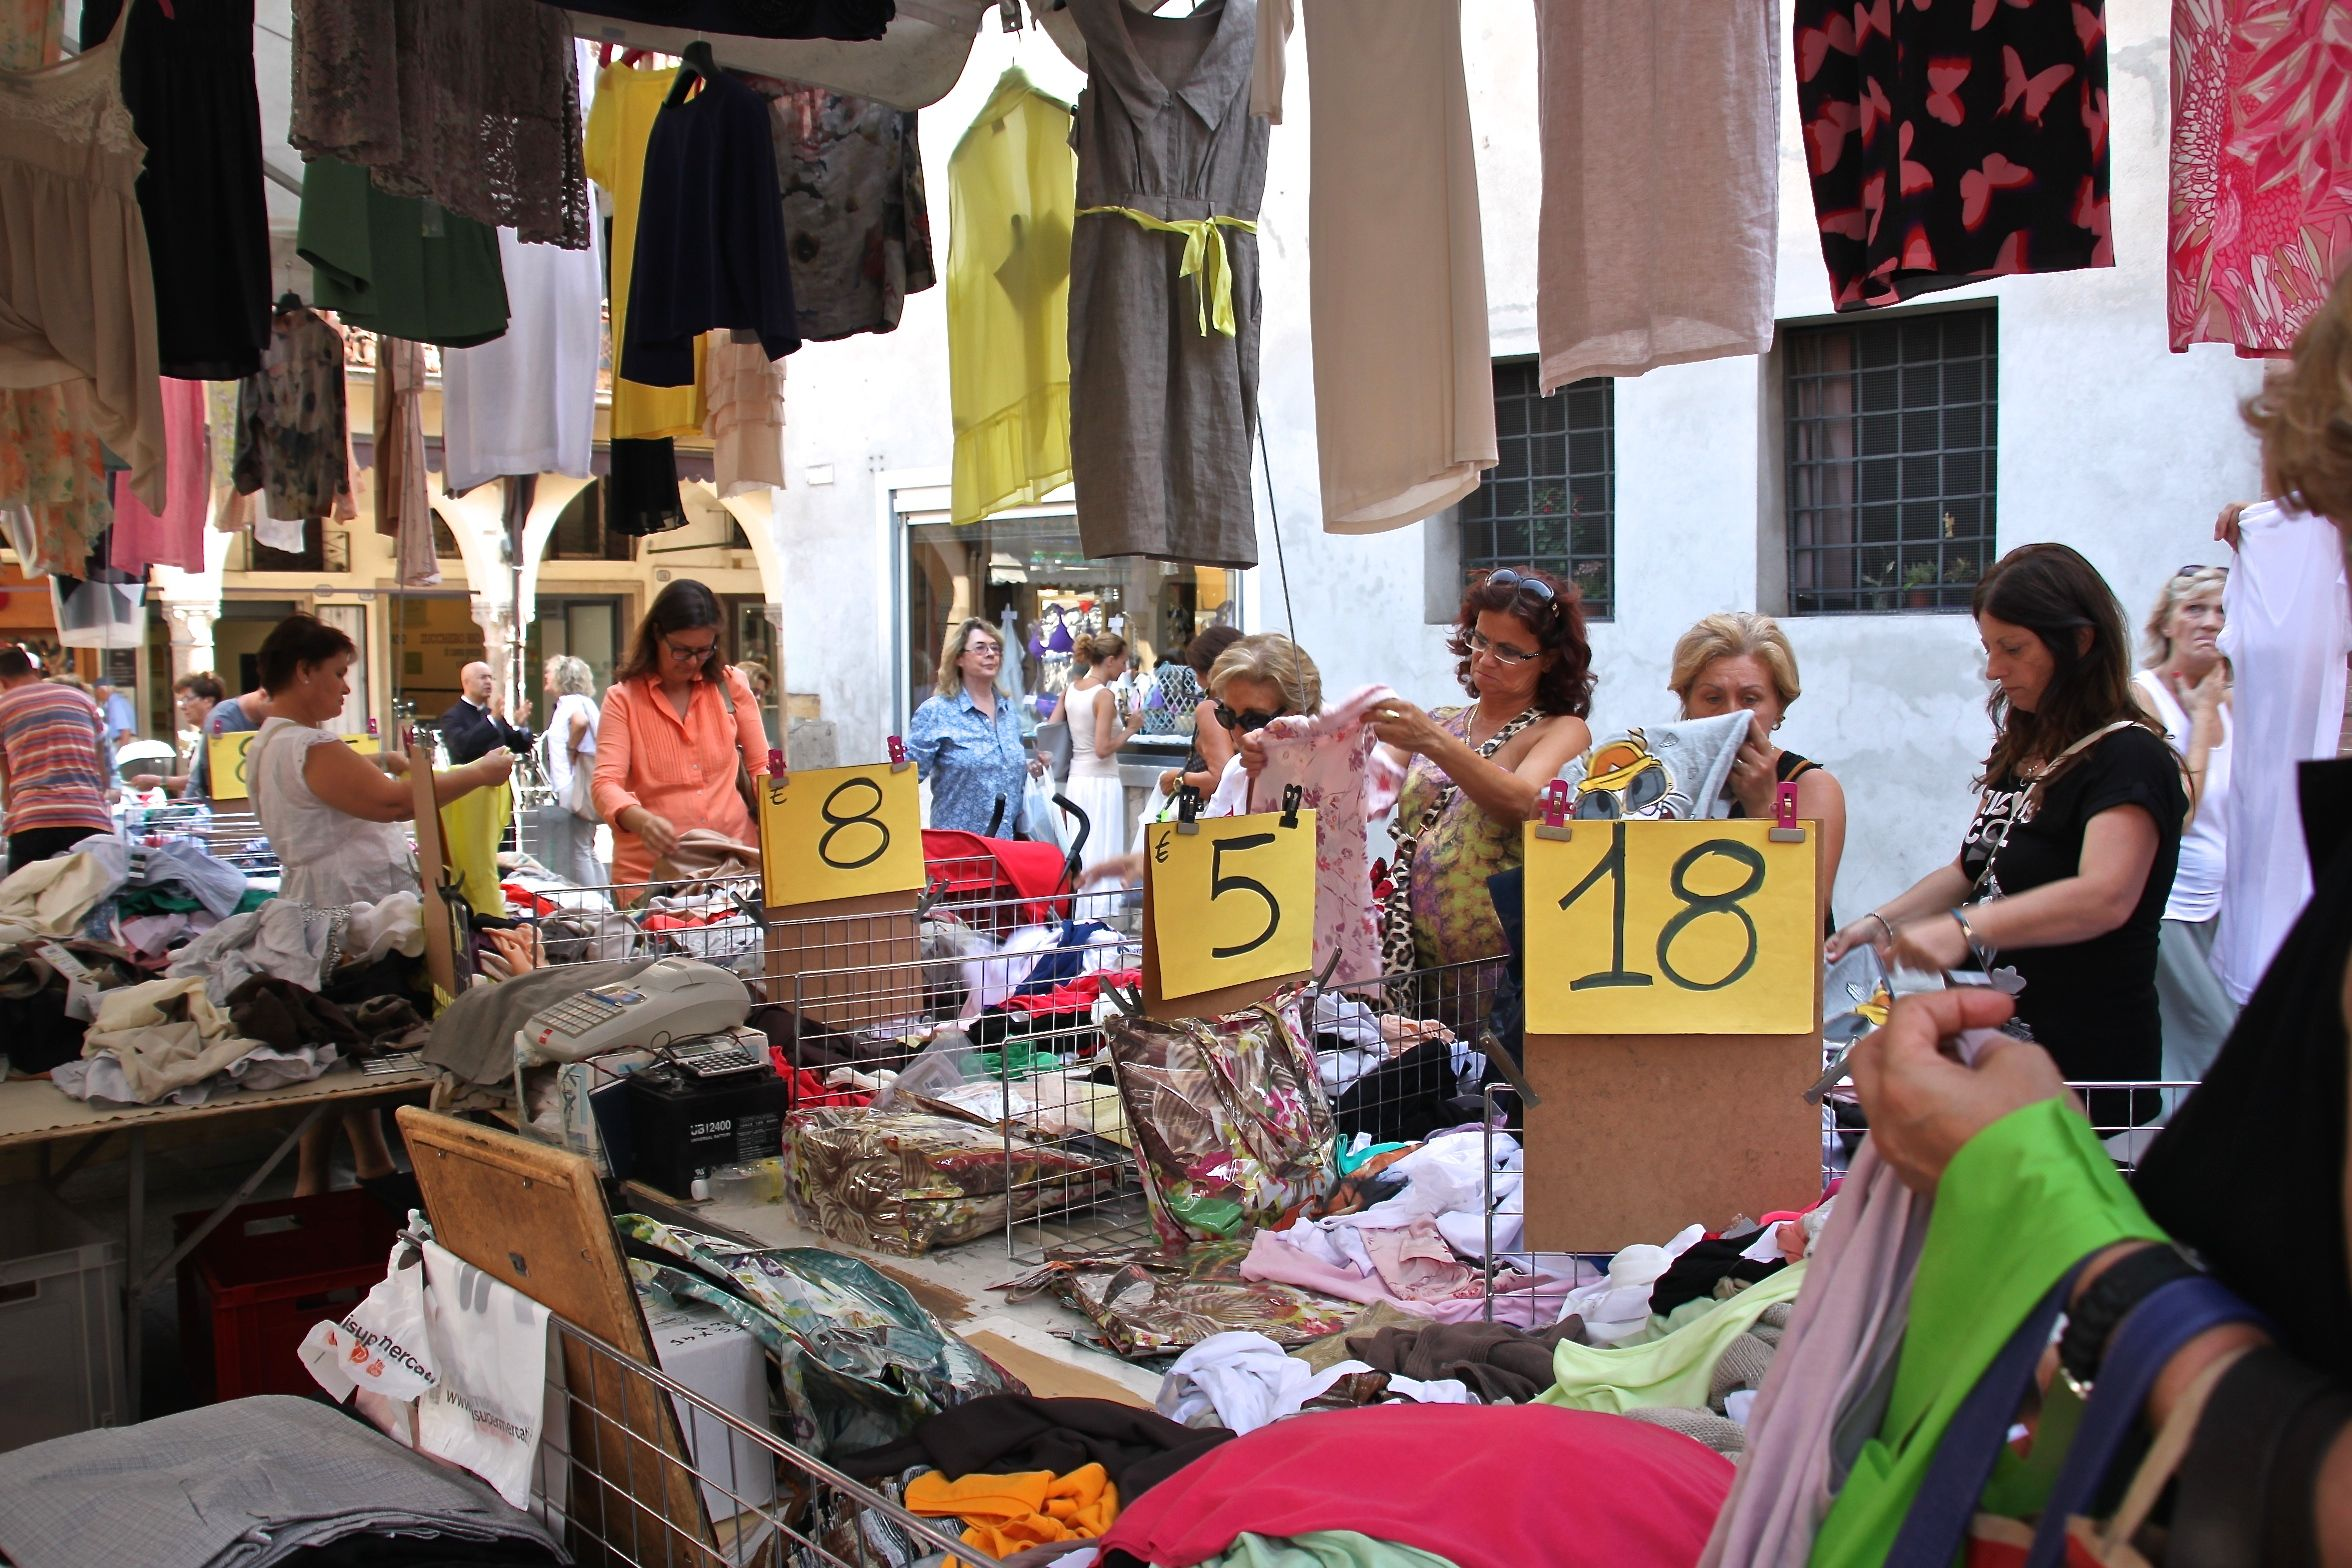 Rummaging for bargains in Padua's clothes market